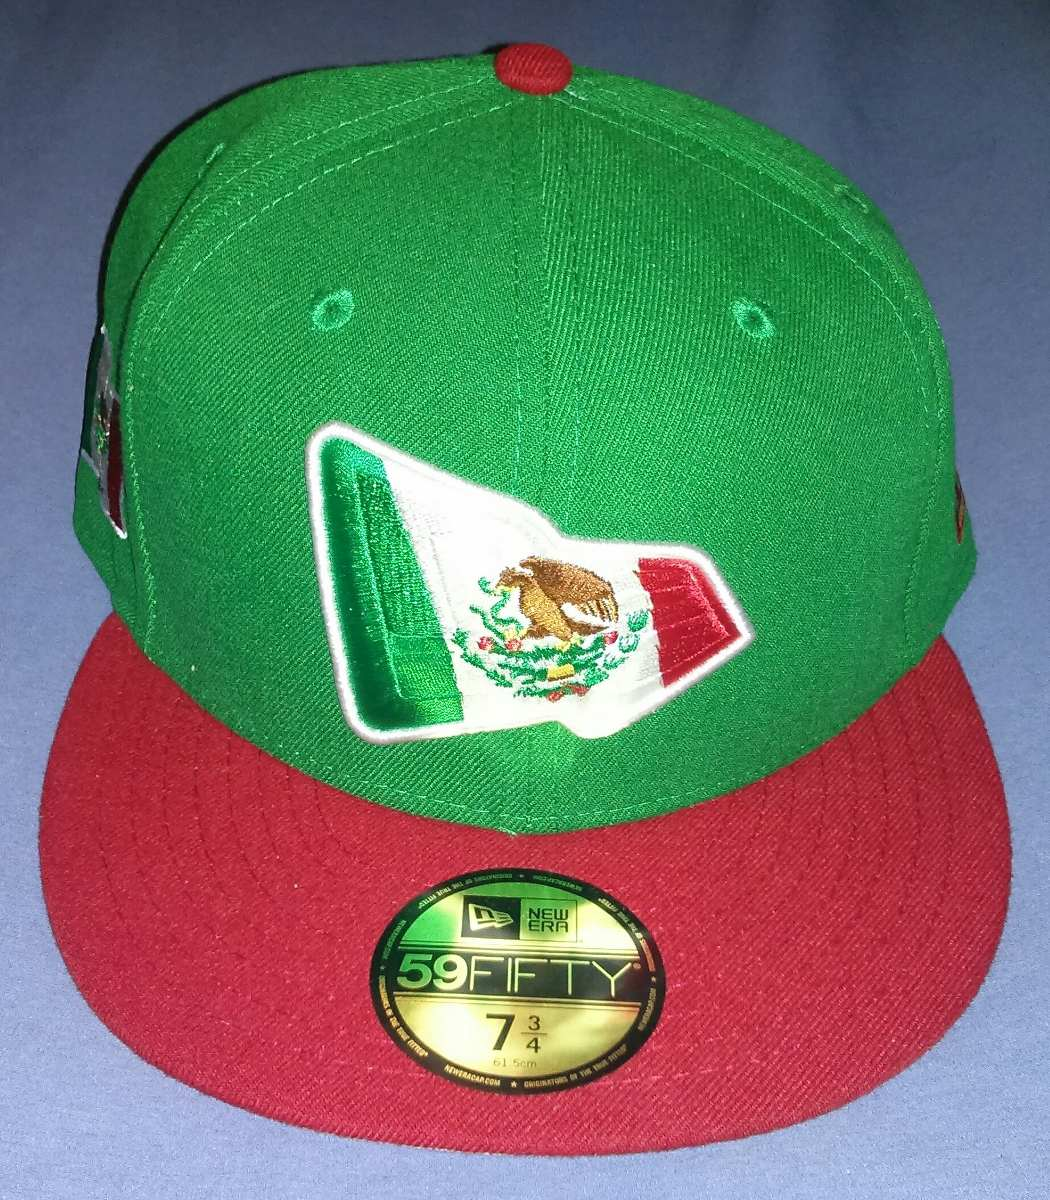 Acsg Gorra New Era 59fifty Mexico Bandera 6 7 8 -   800.00 en ... 10bcc2a4bf5